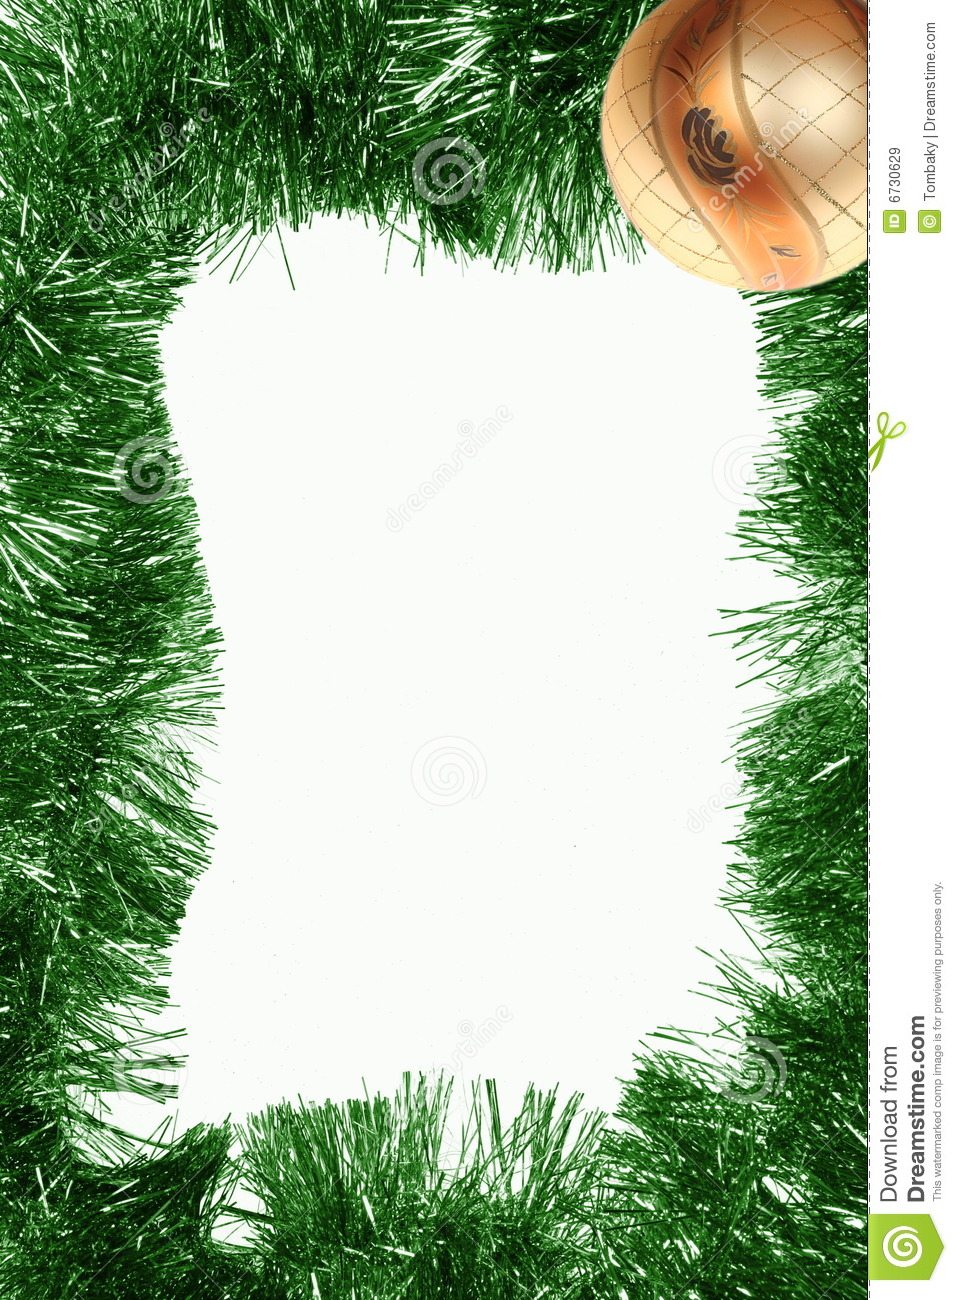 Vertical Christmas Frame Royalty Free Stock Images - Image: 6730629